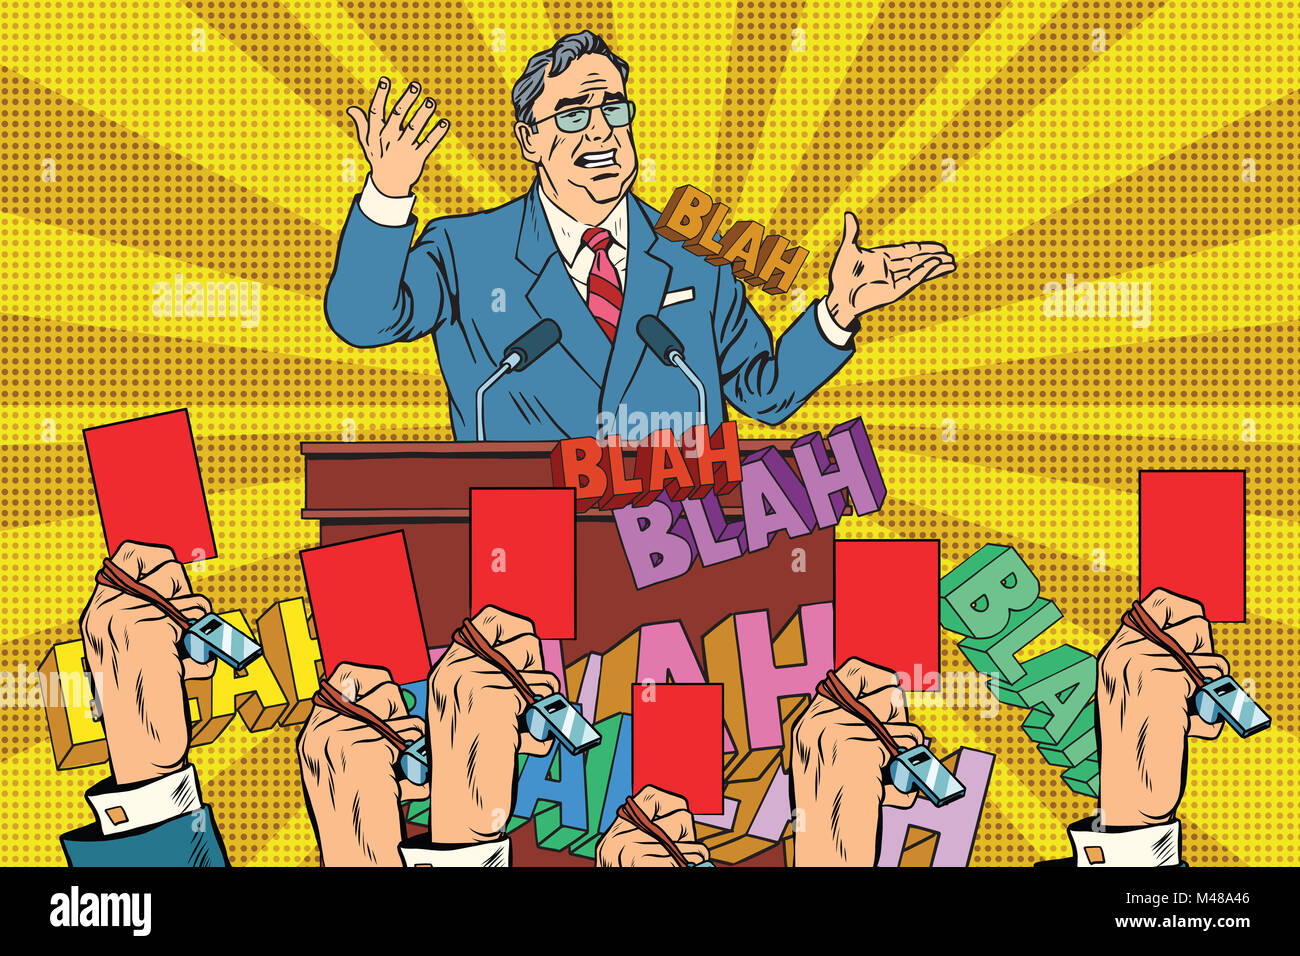 Distrust of politics, a red card candidate - Stock Image